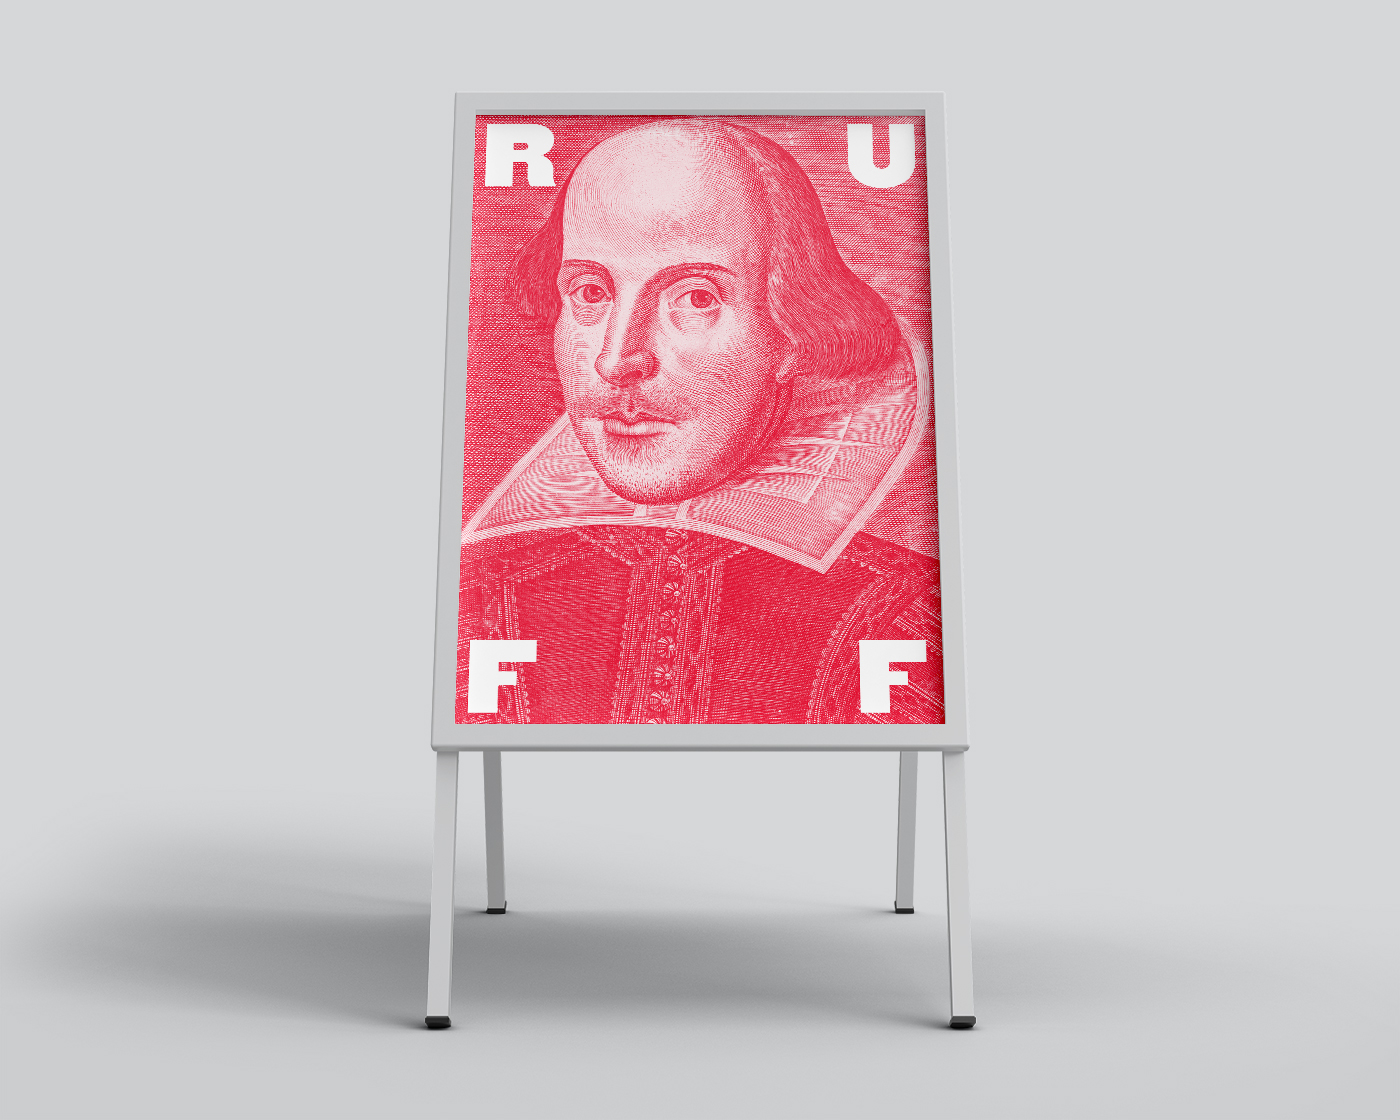 Shakespeare in the Ruff sandwich board